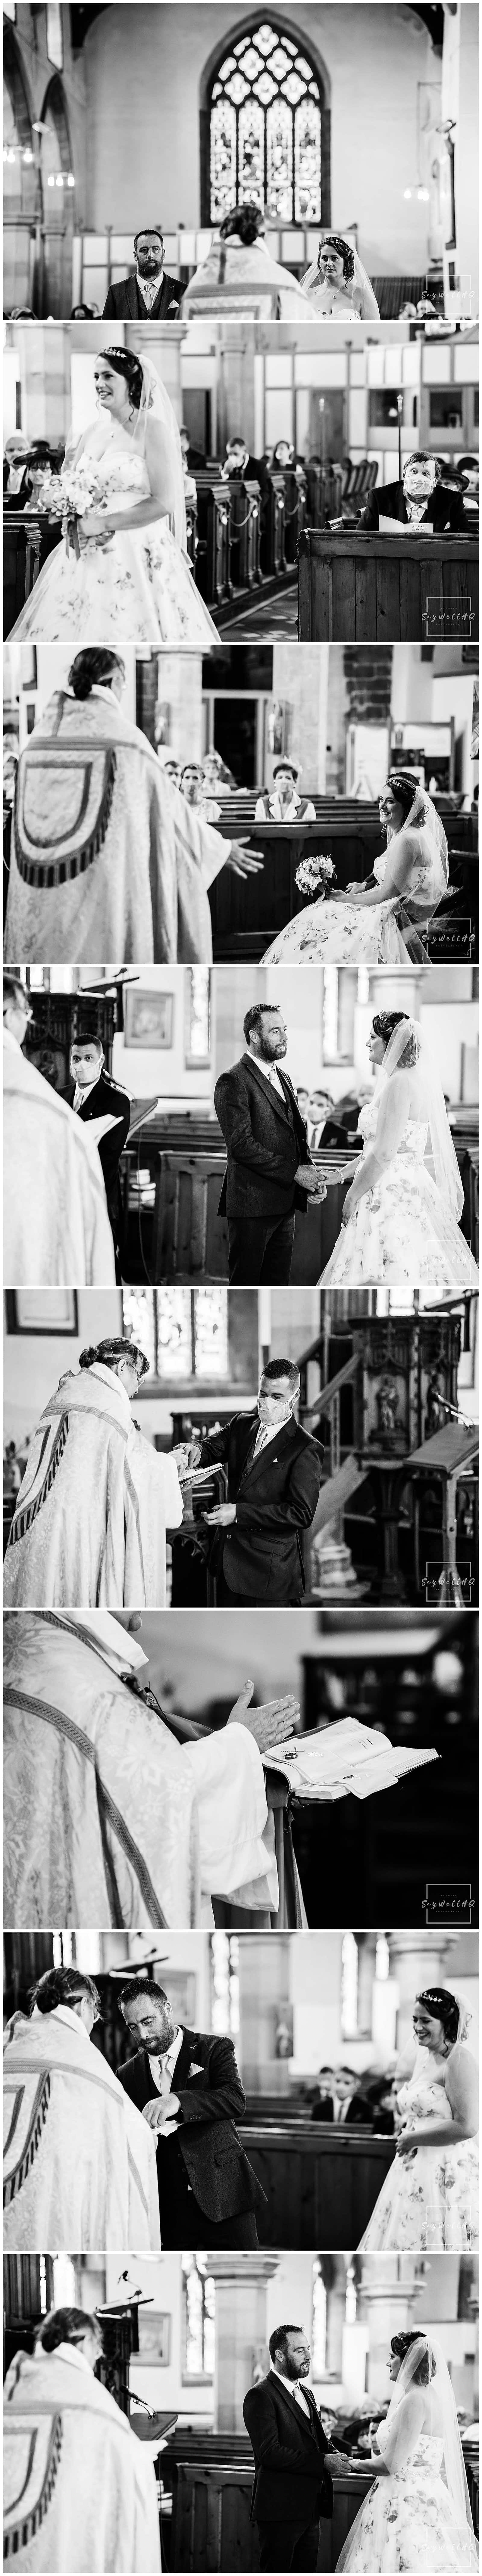 Bride and groom exchange rings during their Spilsby church wedding in Lincolnshire - by Wedding Photographer Andy Saywell of SaywellHQ